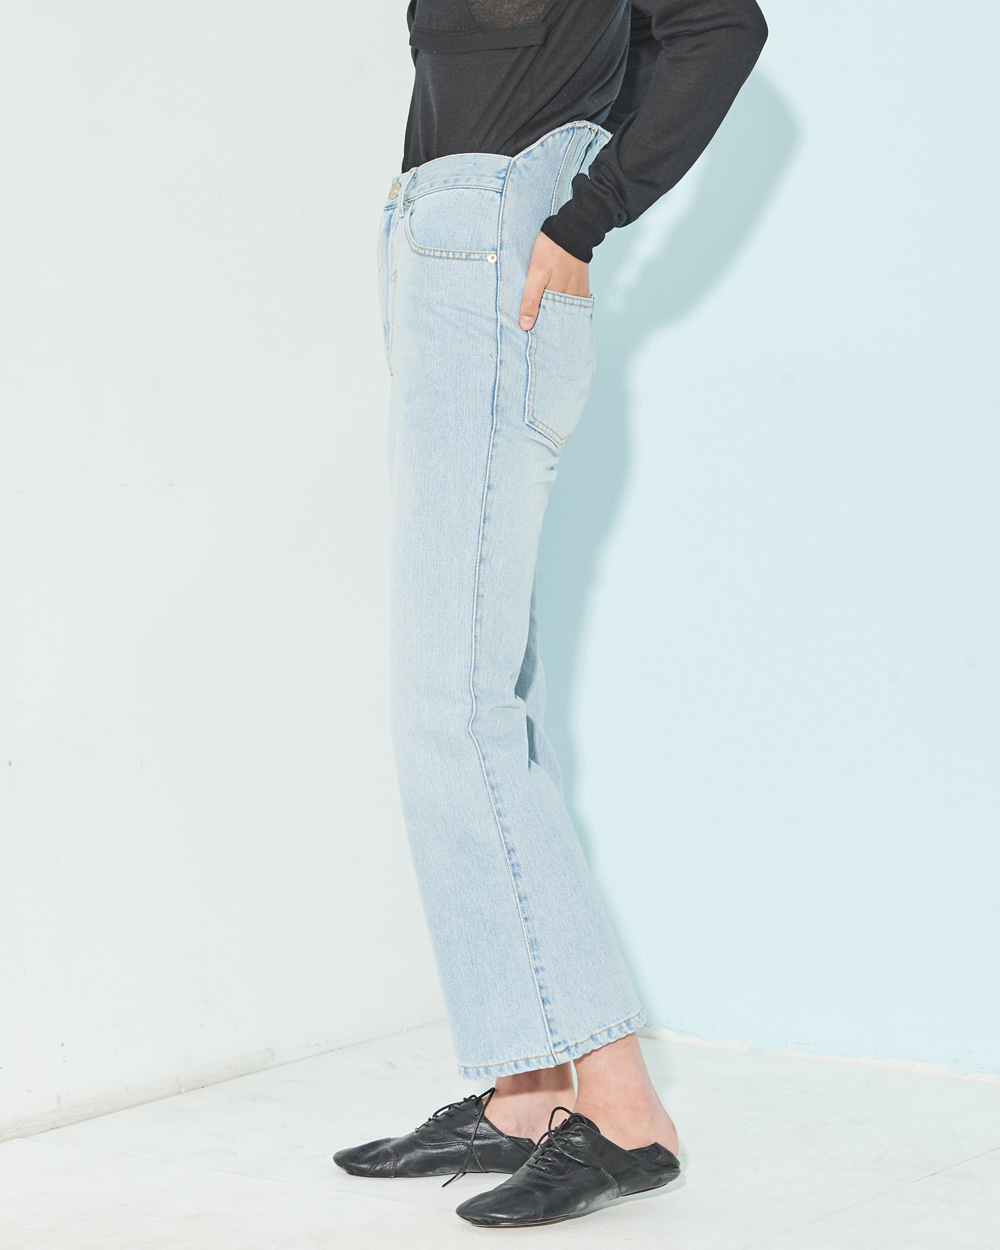 CORSETED-BACK BOOTS CUT JEANS